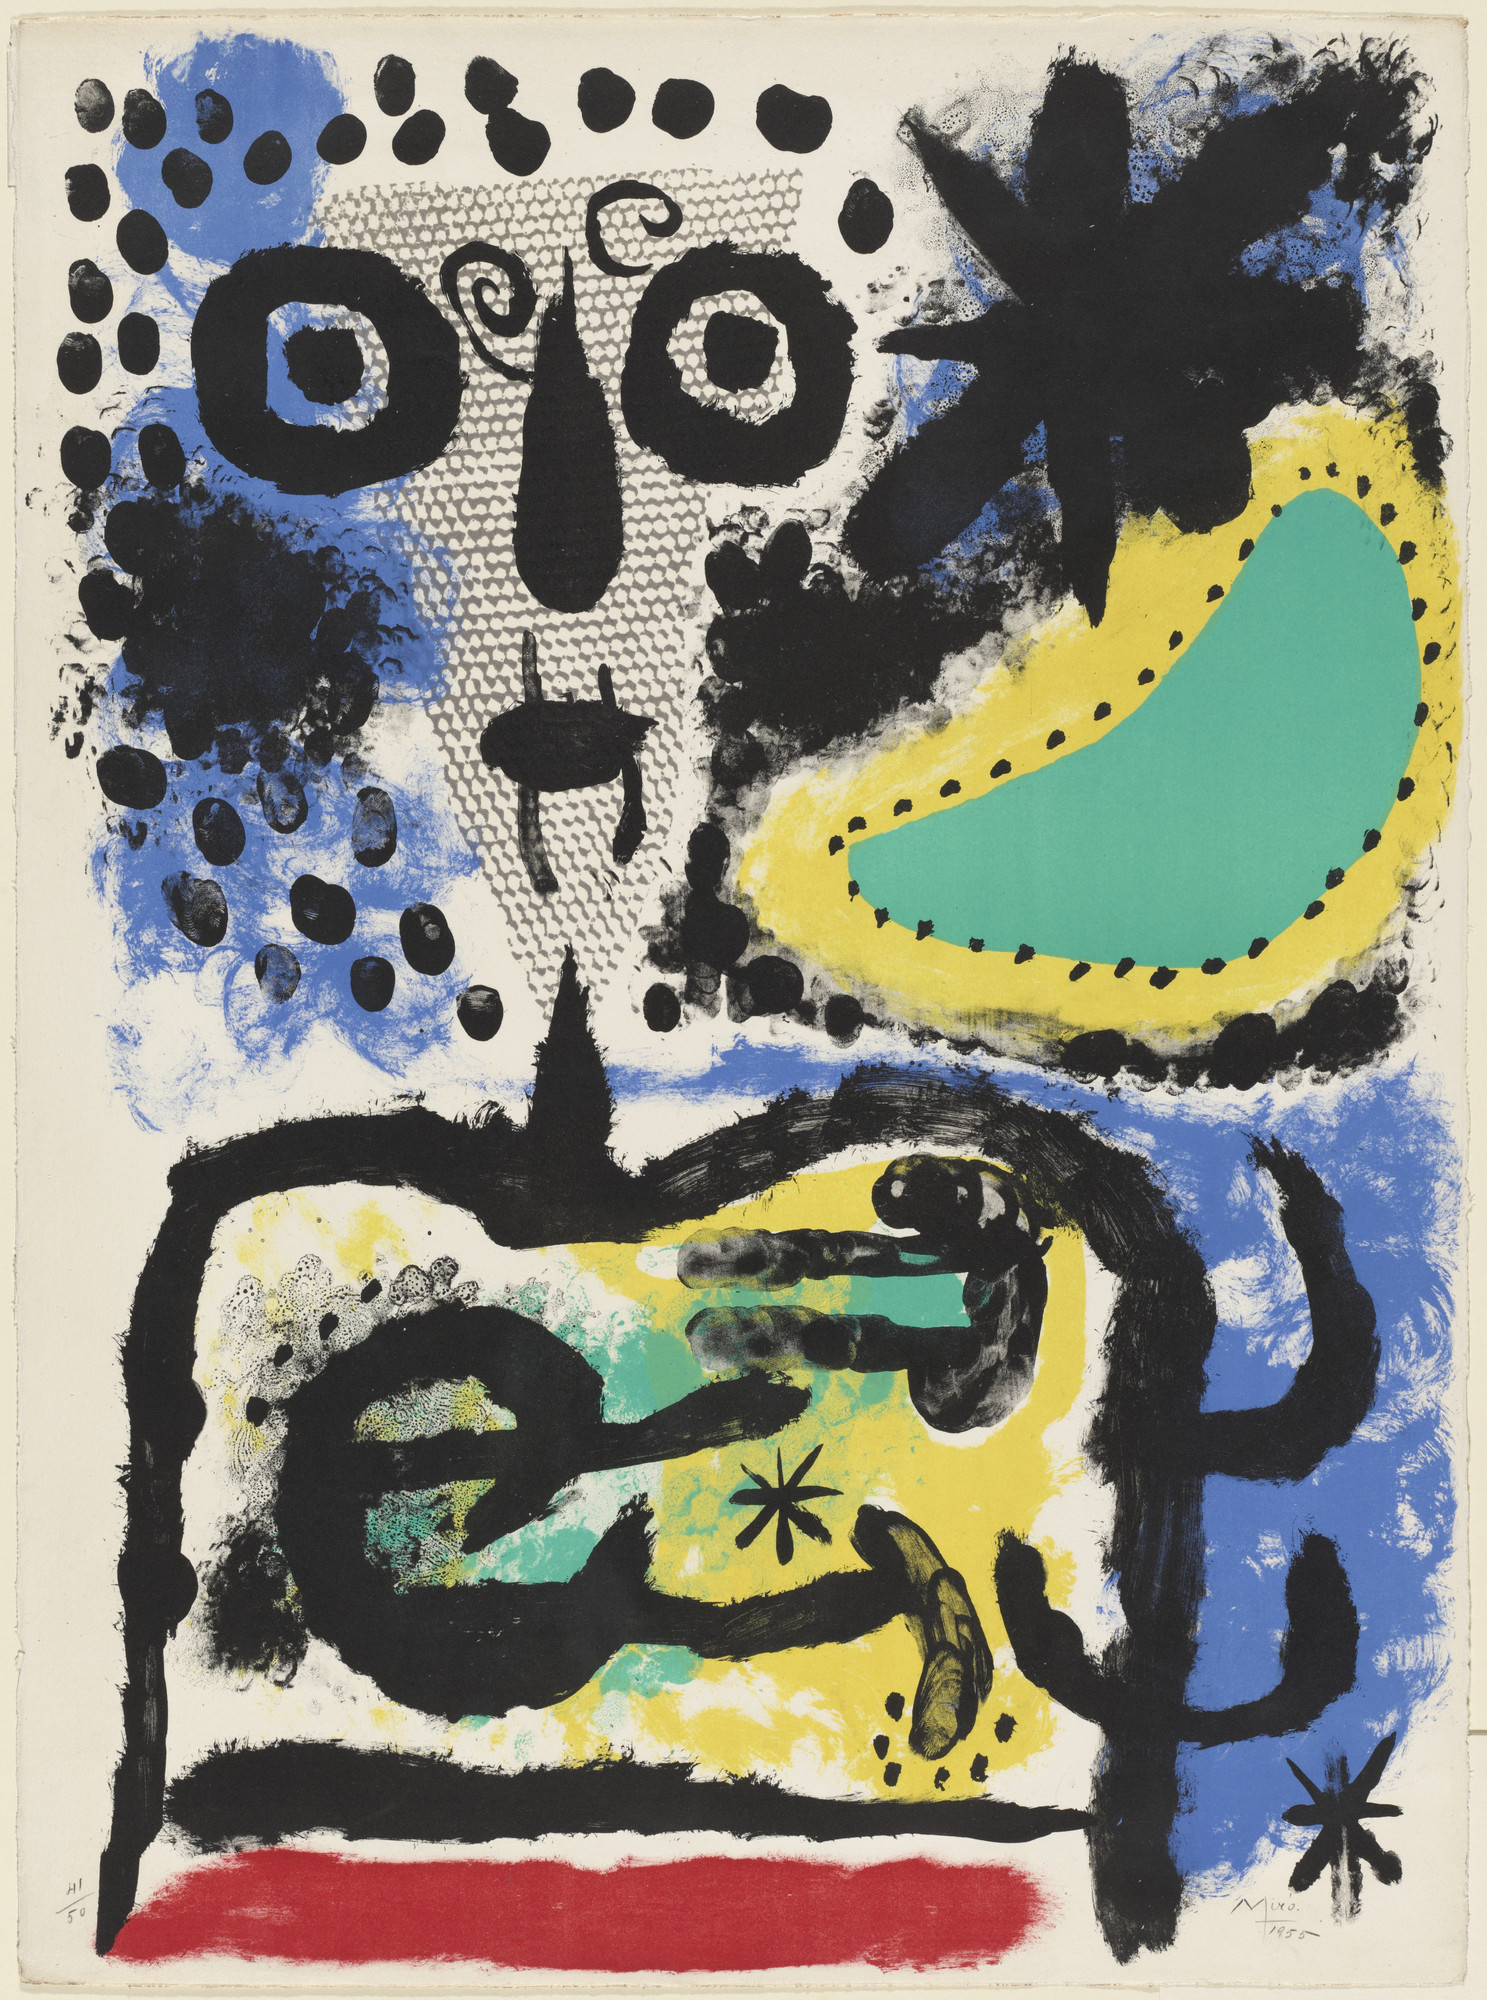 Joan Miró. Beclouded Person. 1955